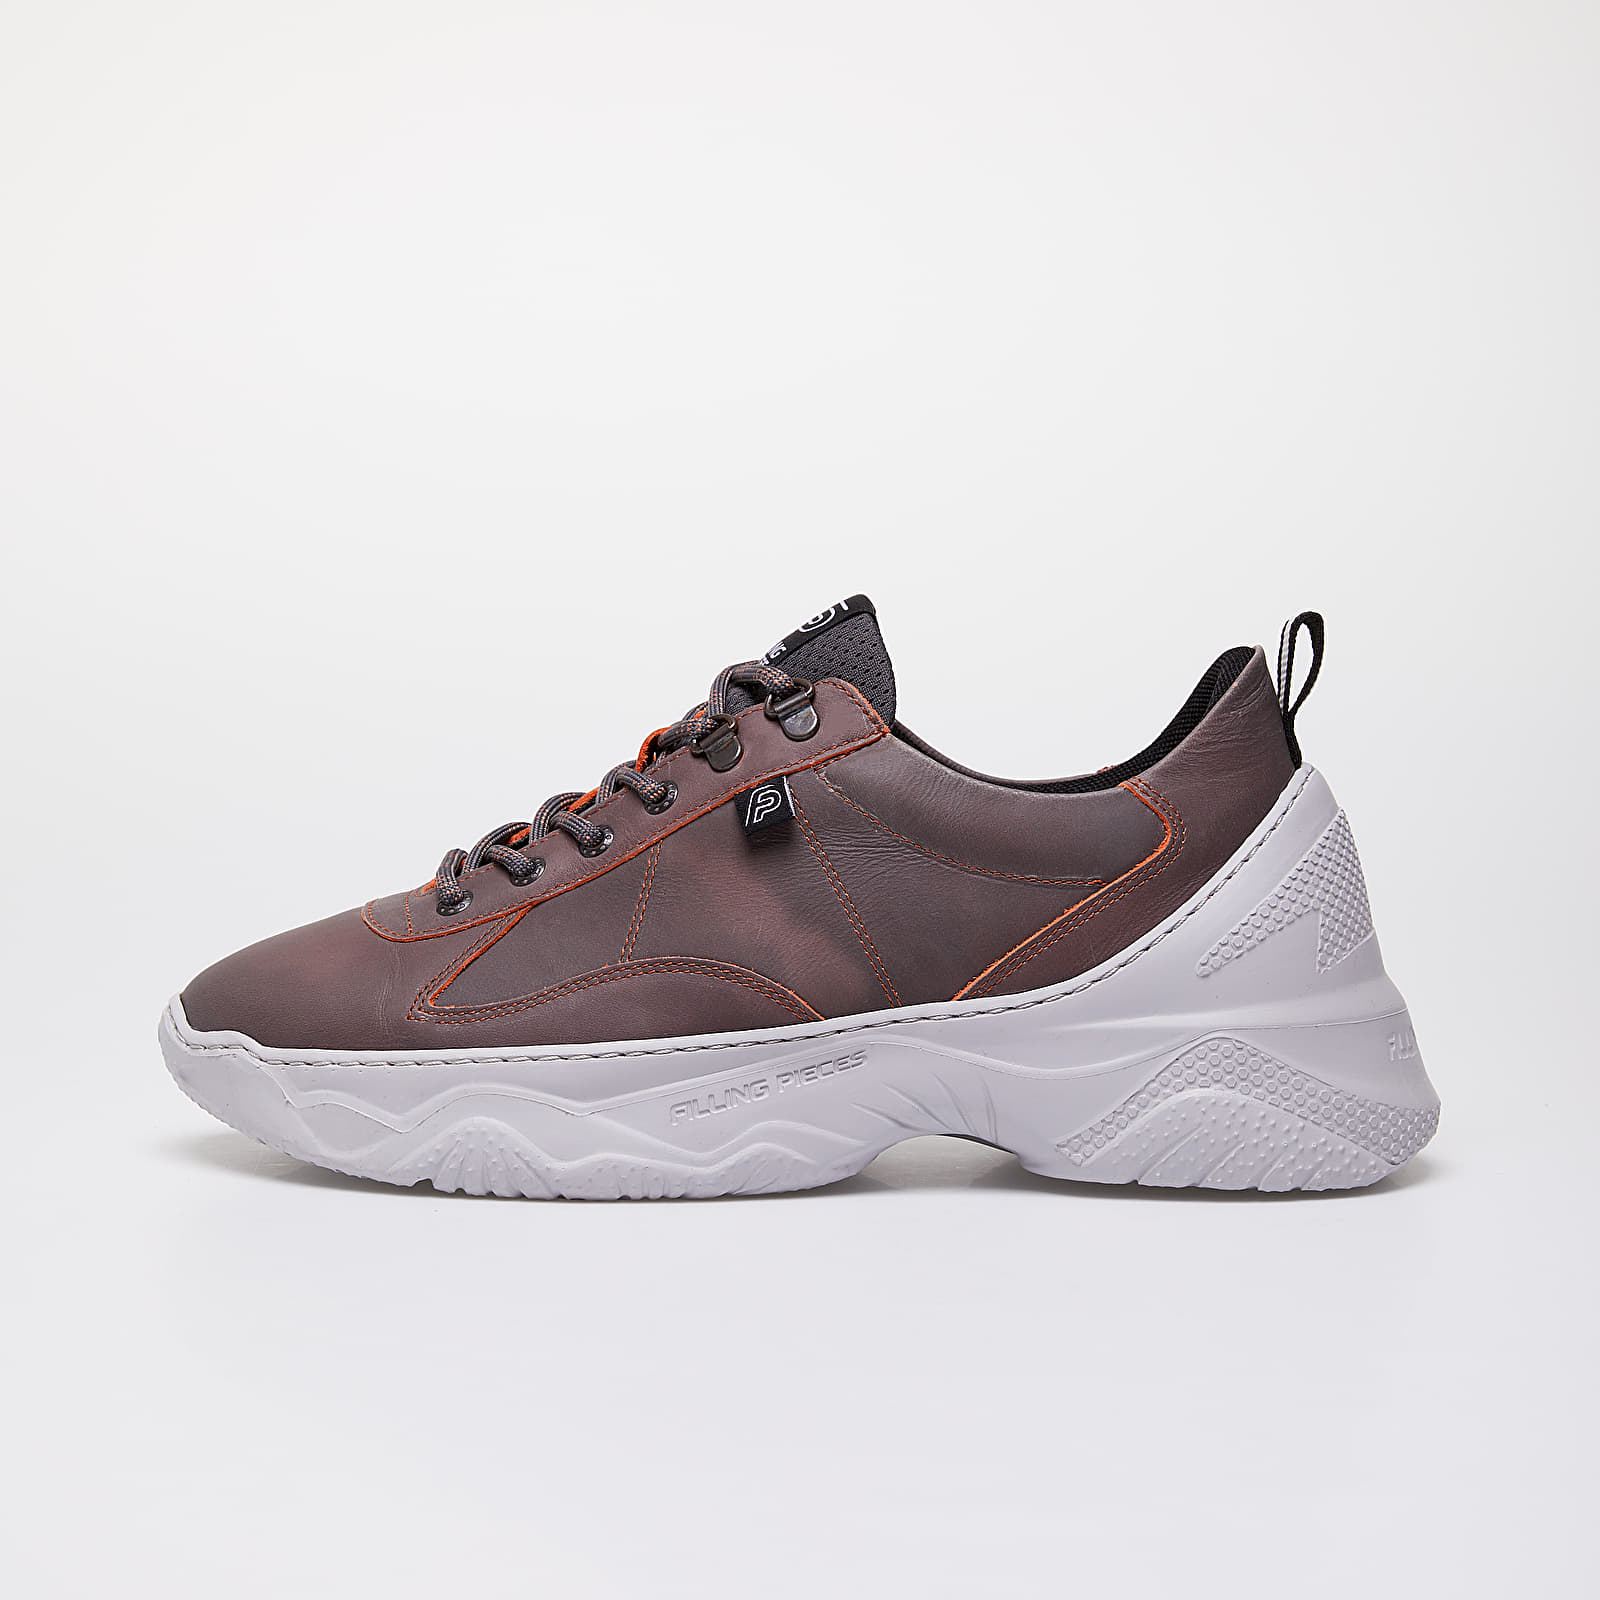 Chaussures et baskets homme Filling Pieces Low Meno Shuttle Chroma Black